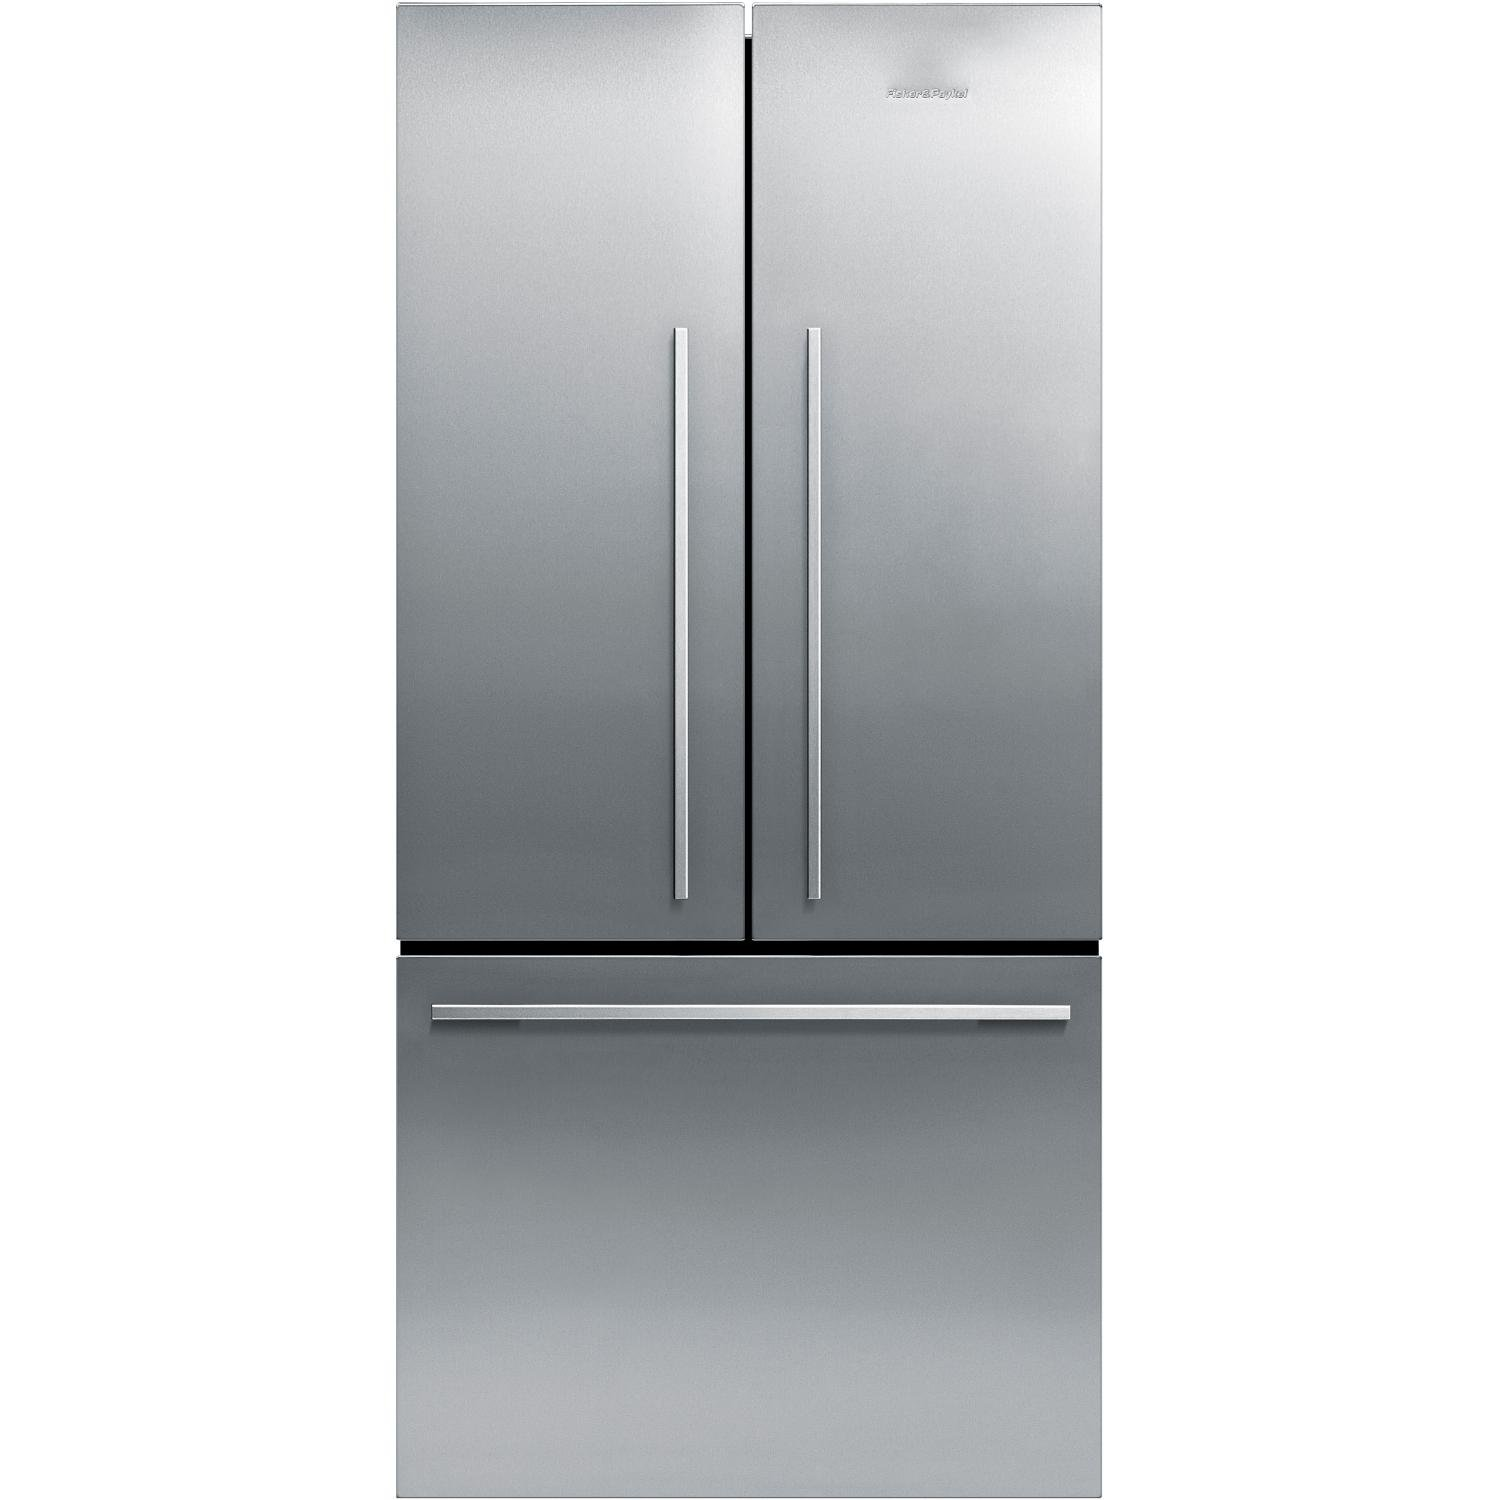 door appliance ge monogram in doors french built appliances at stainless steel refrigerator us